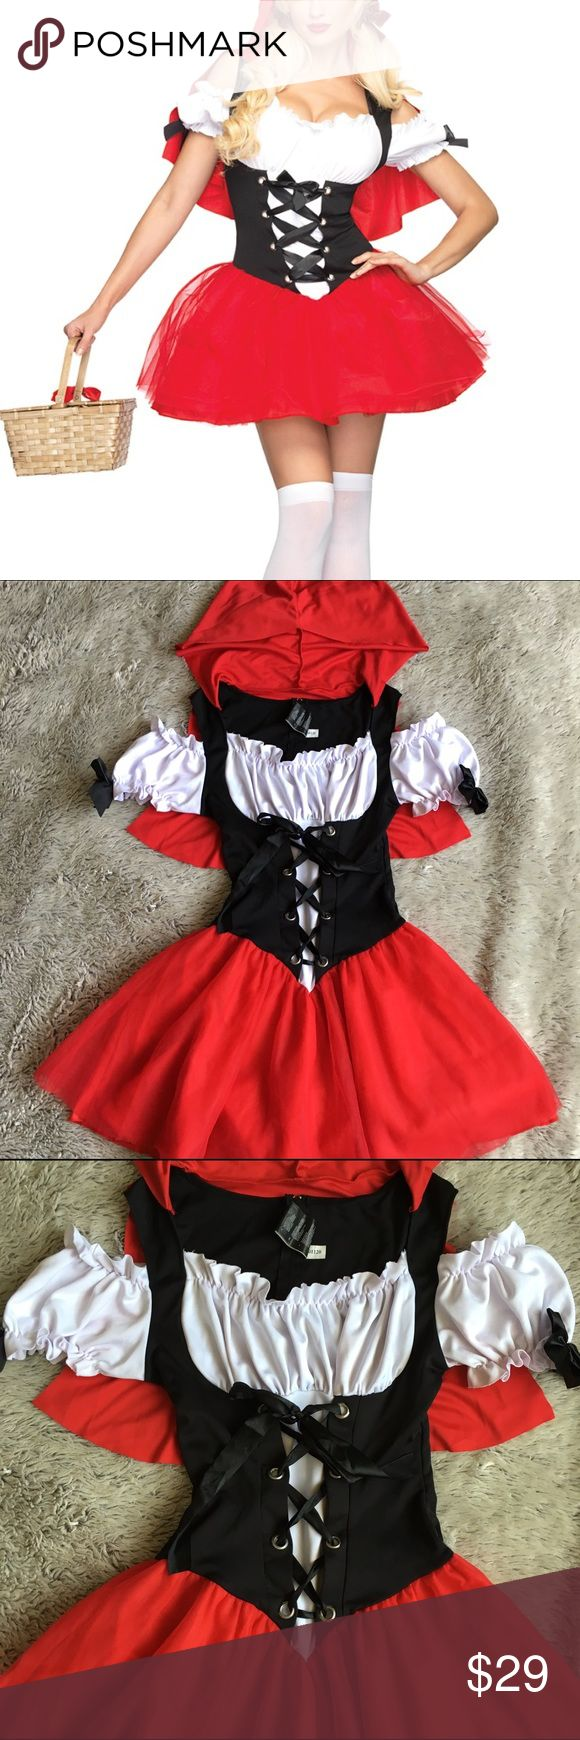 Sexy Little Red Riding Hood Costume-EUC Black peasant dress has corset-like top w/ black ribbon lacing up chest.  Black shoulder straps are attached to a red hood. Has back zip closure. Elastic lines neckline, shoulders, & sleeve cuffs Attached red tutu skirt is topped w/ two sheer red mesh overskirts.  Worn once and washed.  In excellent condition. Comes in the original packaging. Other